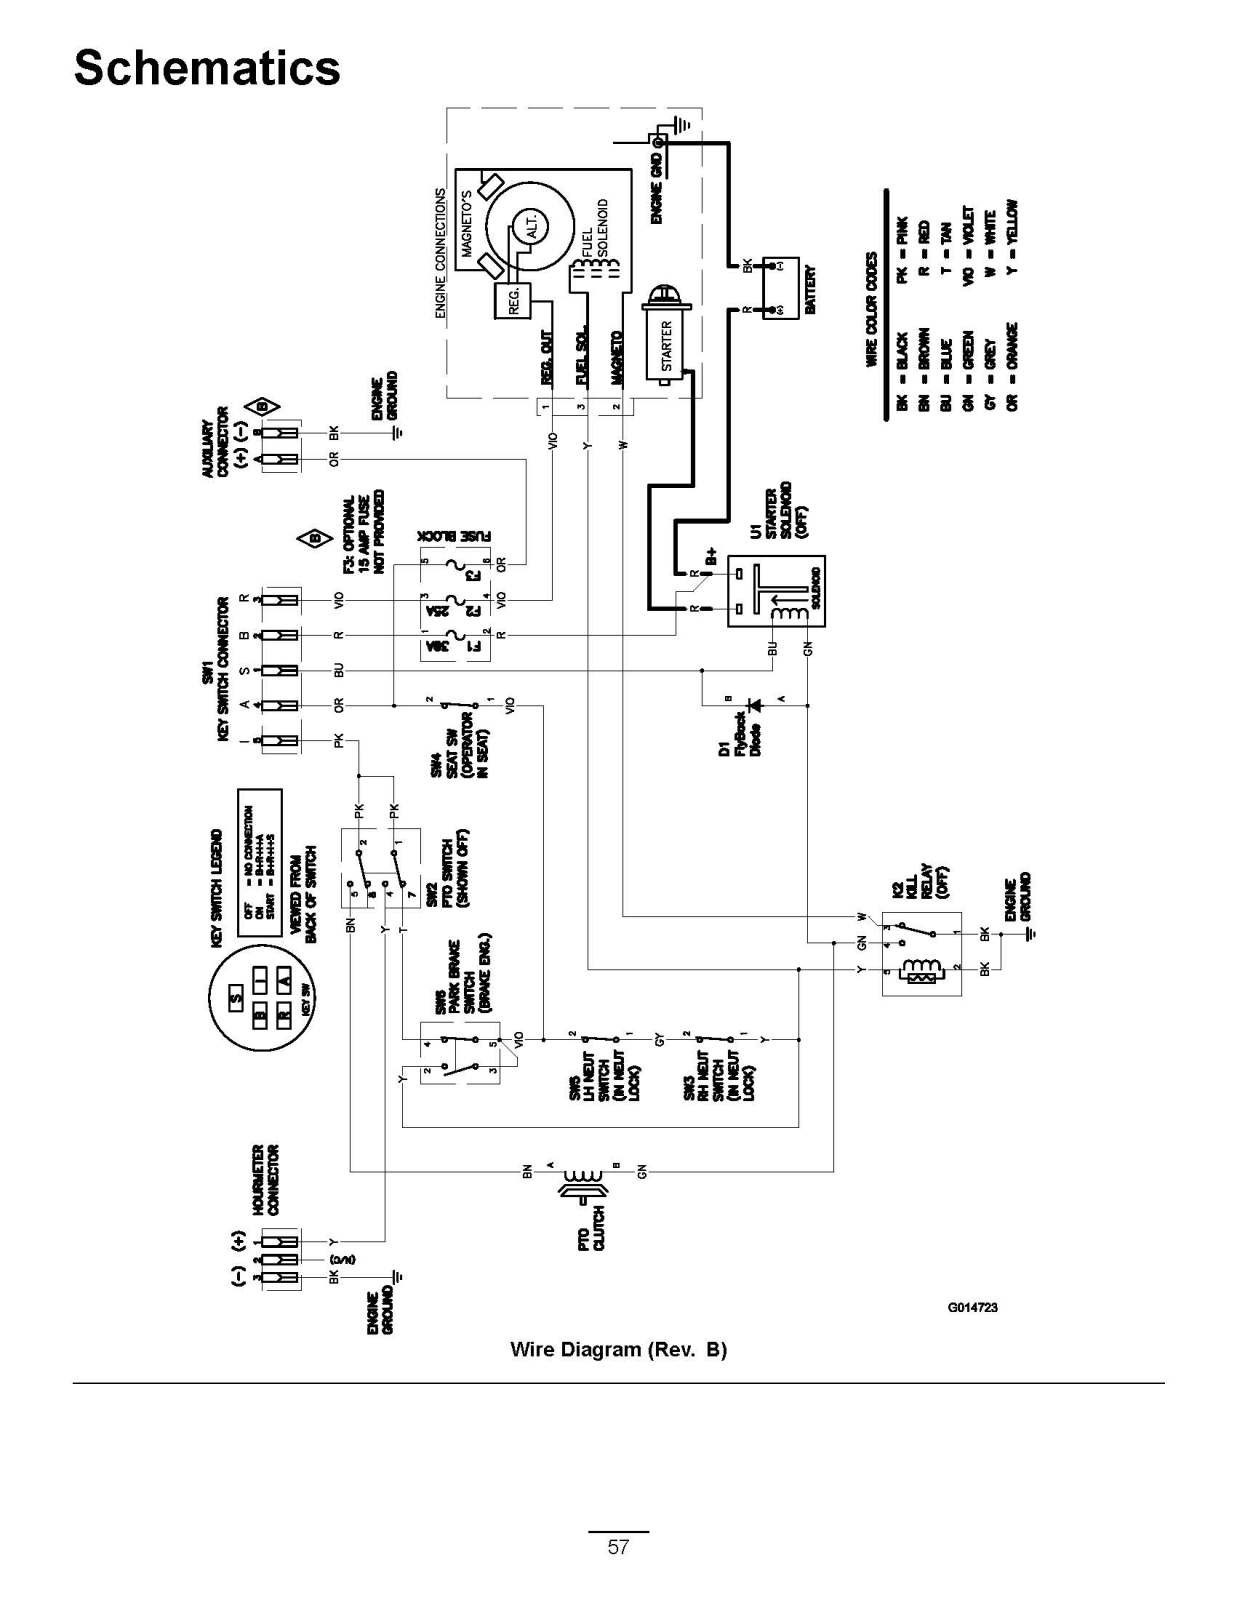 wiring diagram for toro blower data wiring diagrams u2022 rh 45 77 211 17